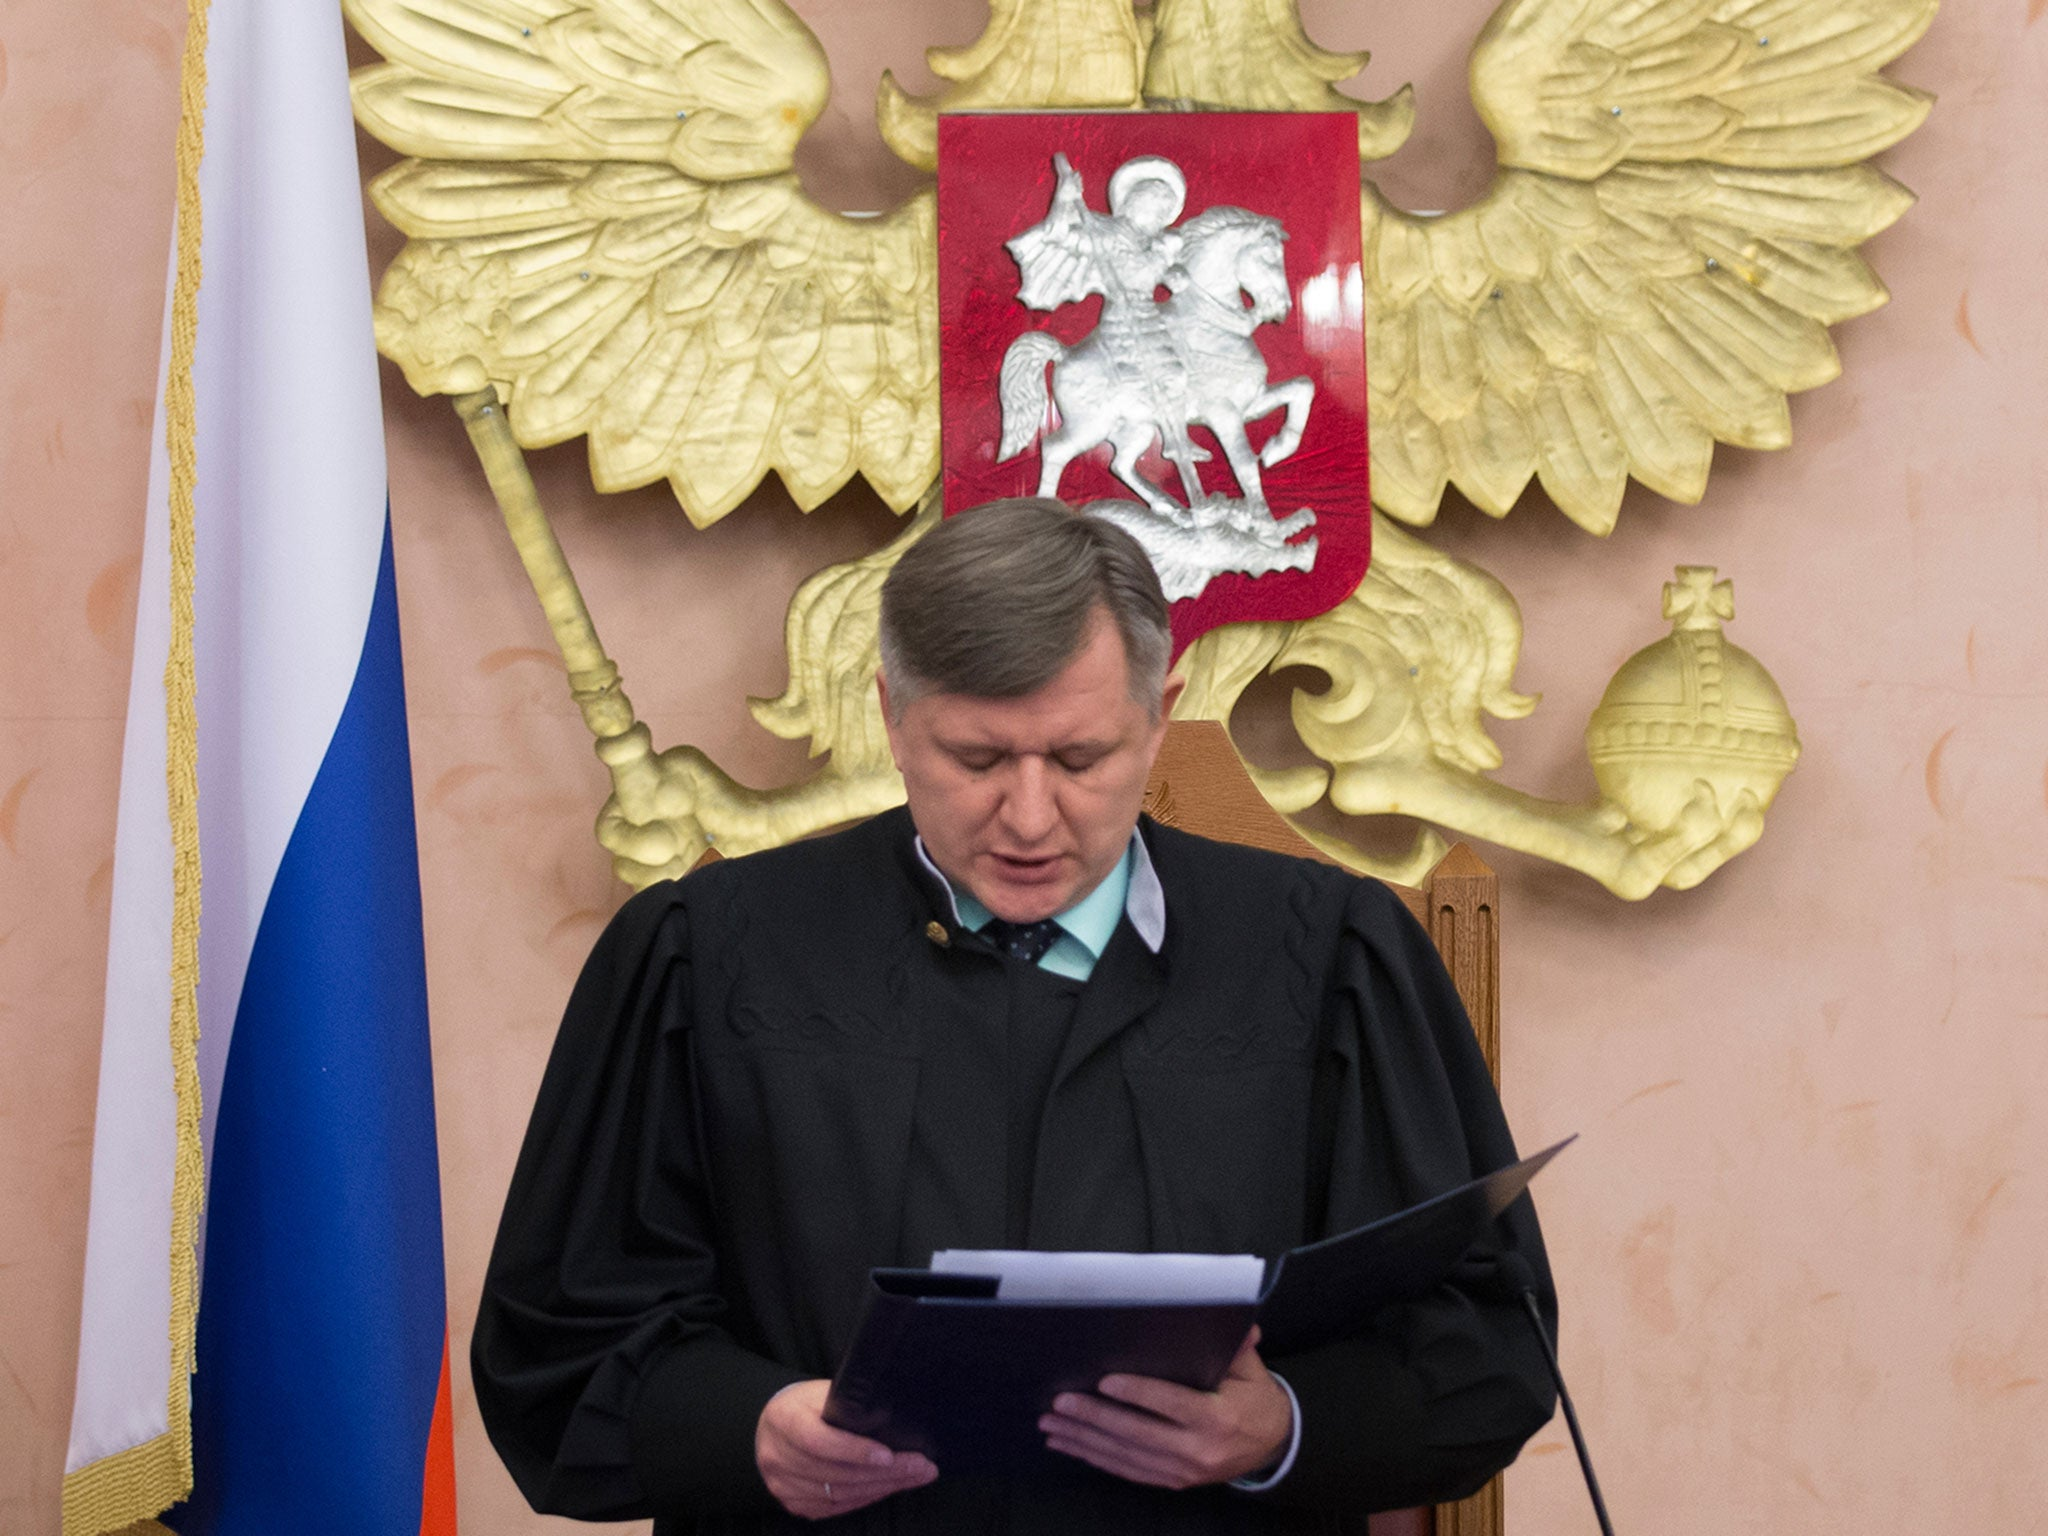 British Government Alarmed At Russian Ban On Extremist Jehovah S Witnesses The Independent